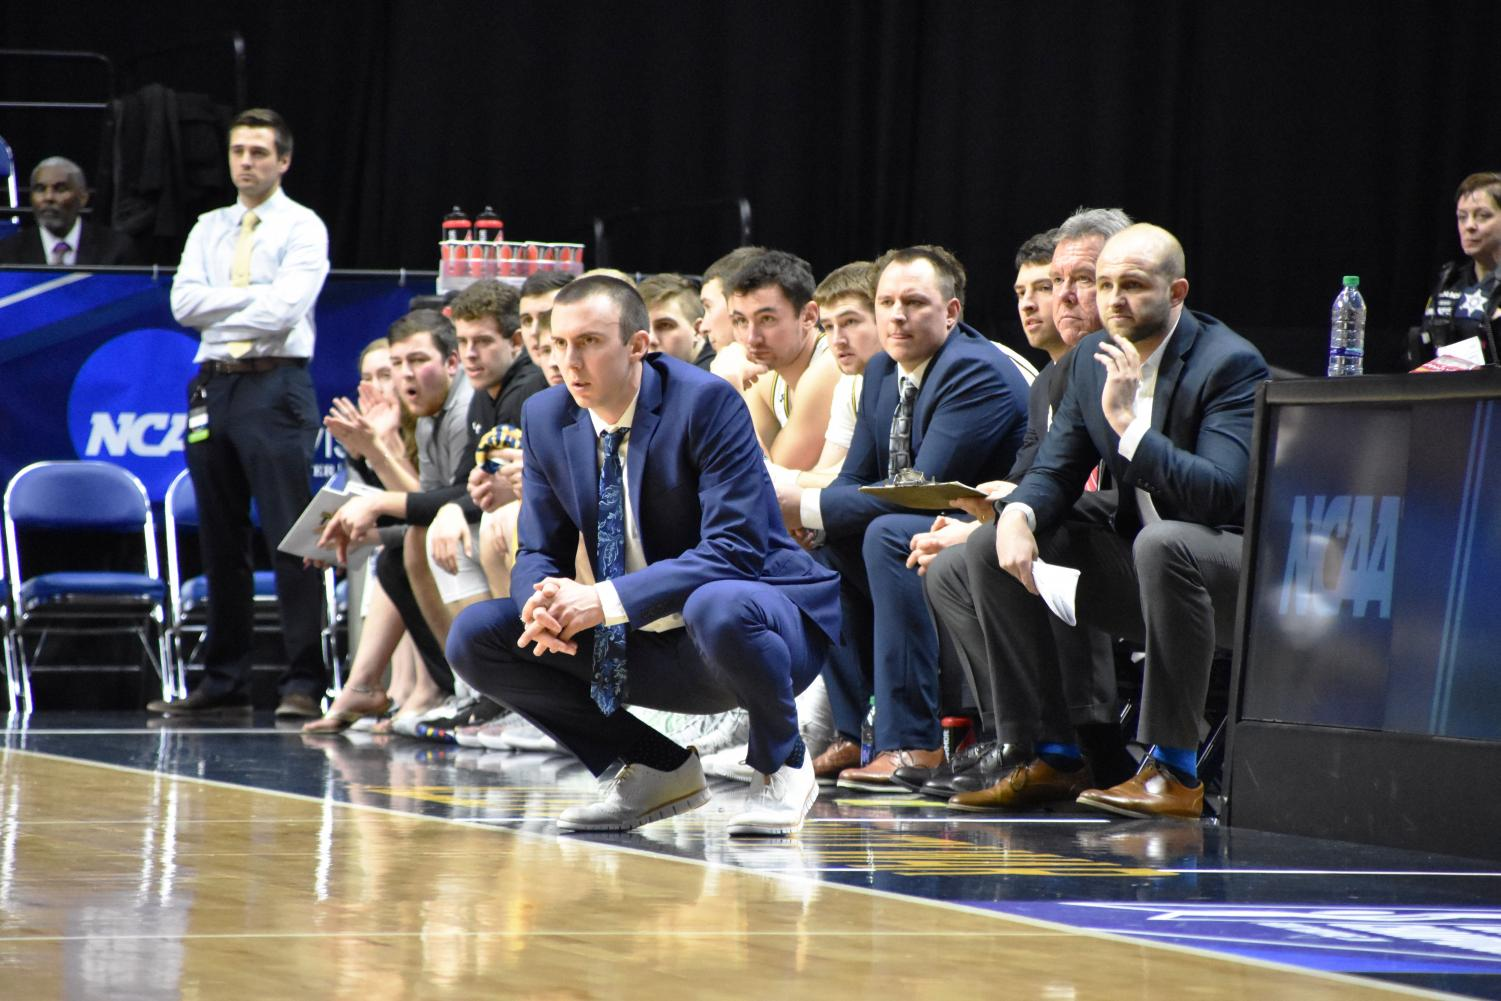 UW Oshkosh Head Coach Matt Lewis crouches during a game in 2019.  Credit: Lydia Sanchez, The Advance Titan